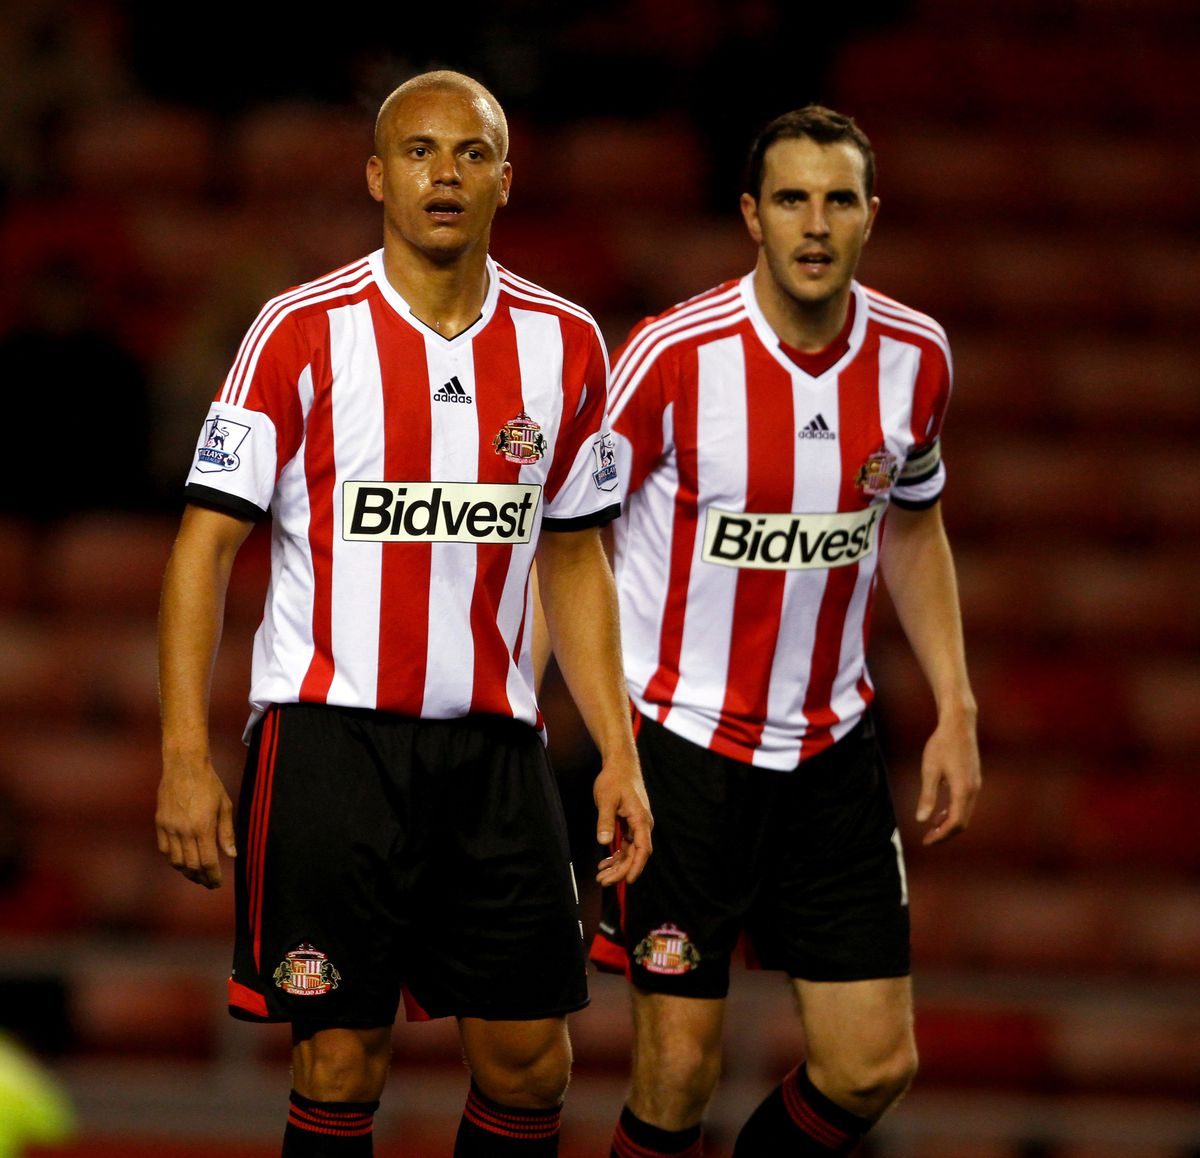 Sunderland v Southampton - Capital One Cup Fourth Round